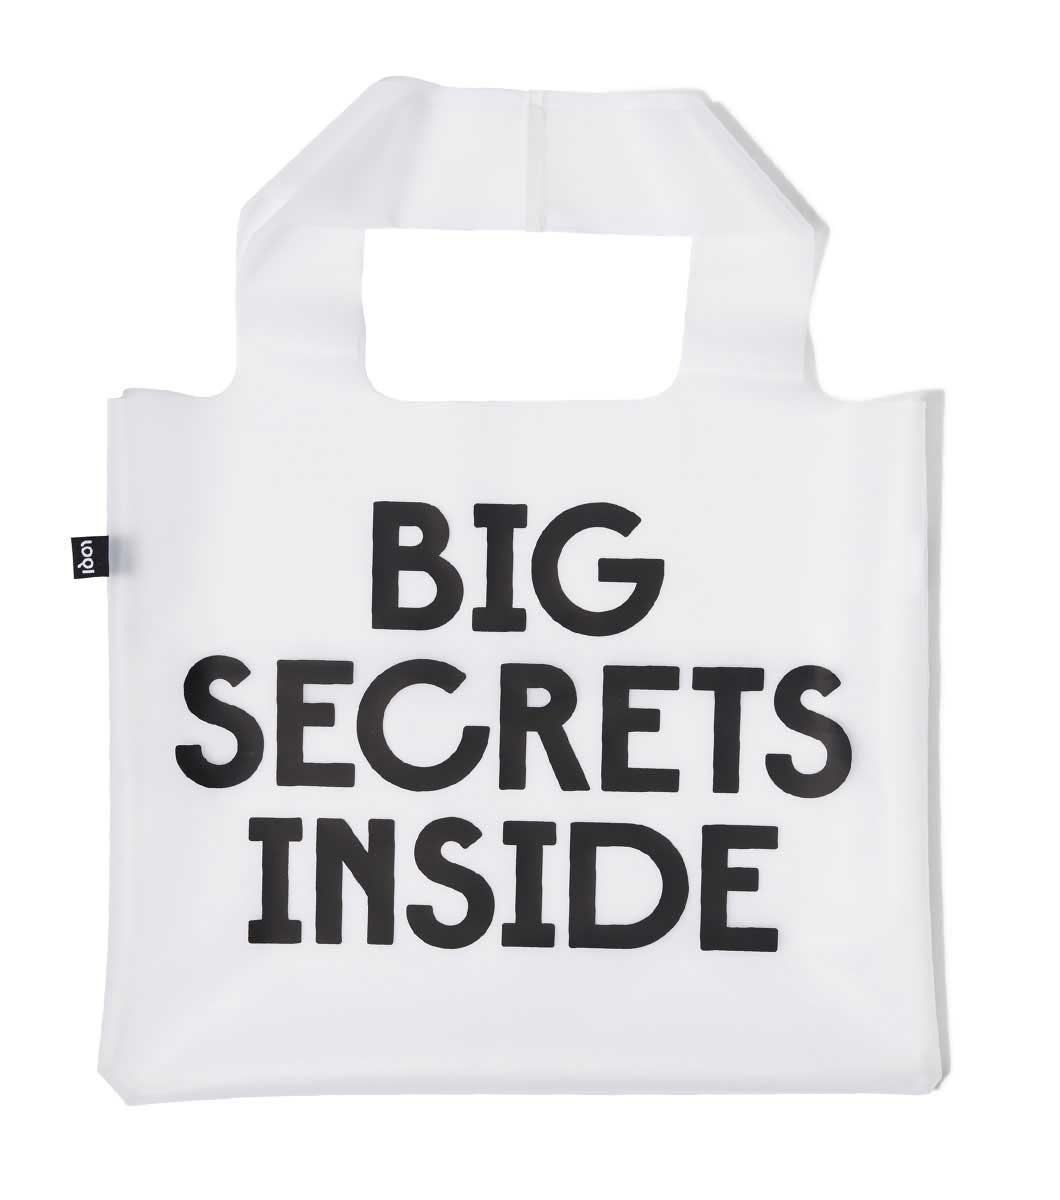 Image of Secret and Classified Transparent Bag